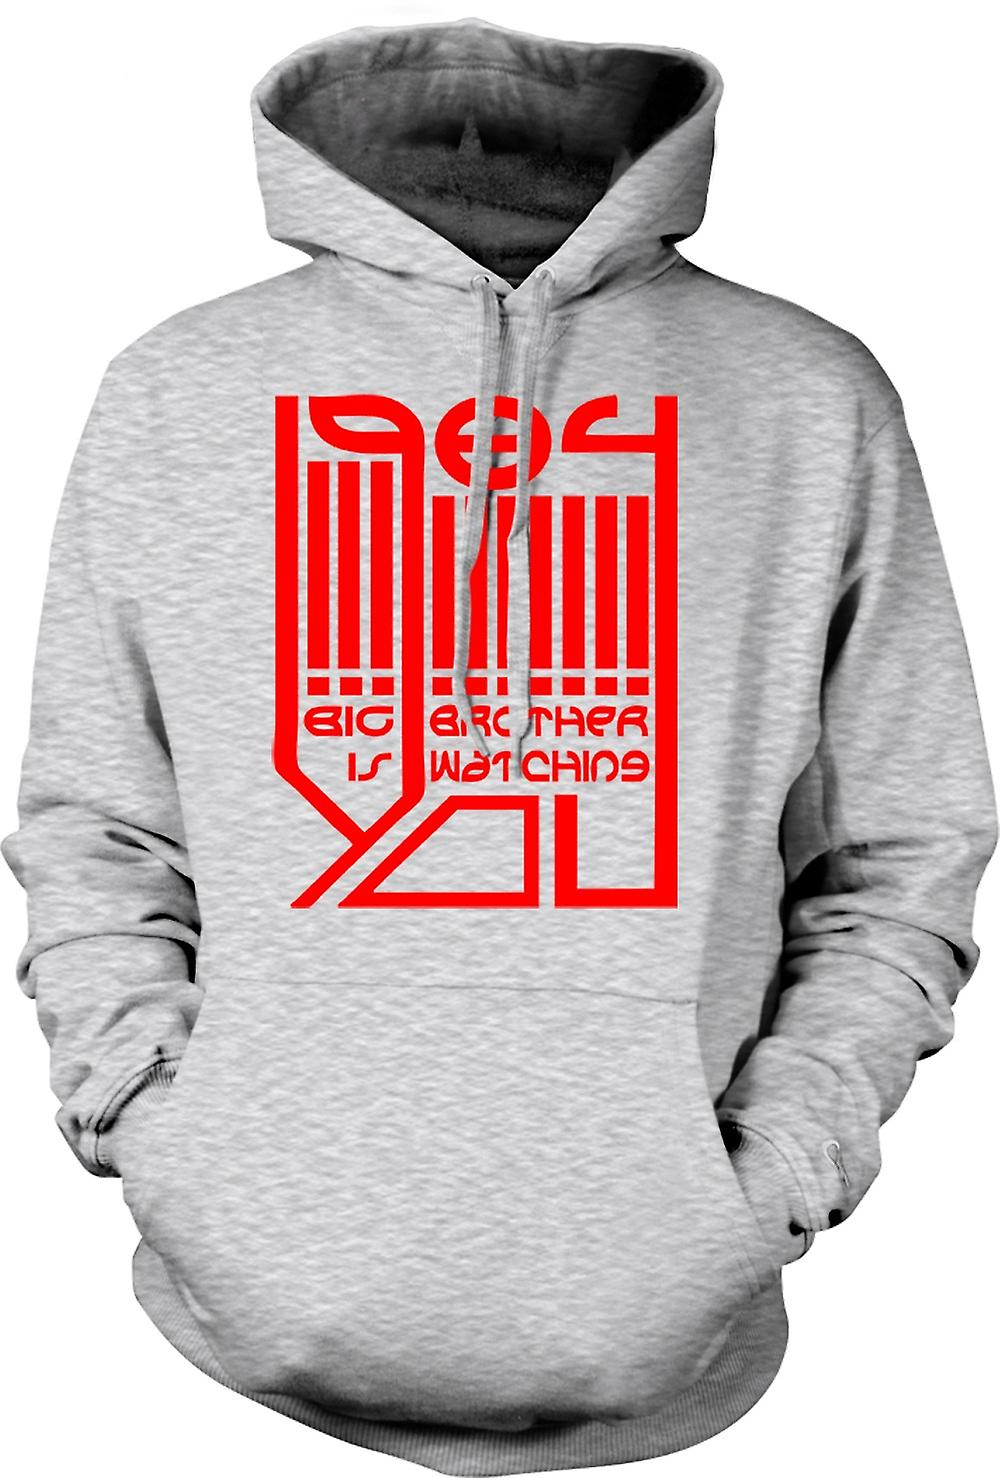 Mens Hoodie - Big Brother Is Watching - Logo - 1984